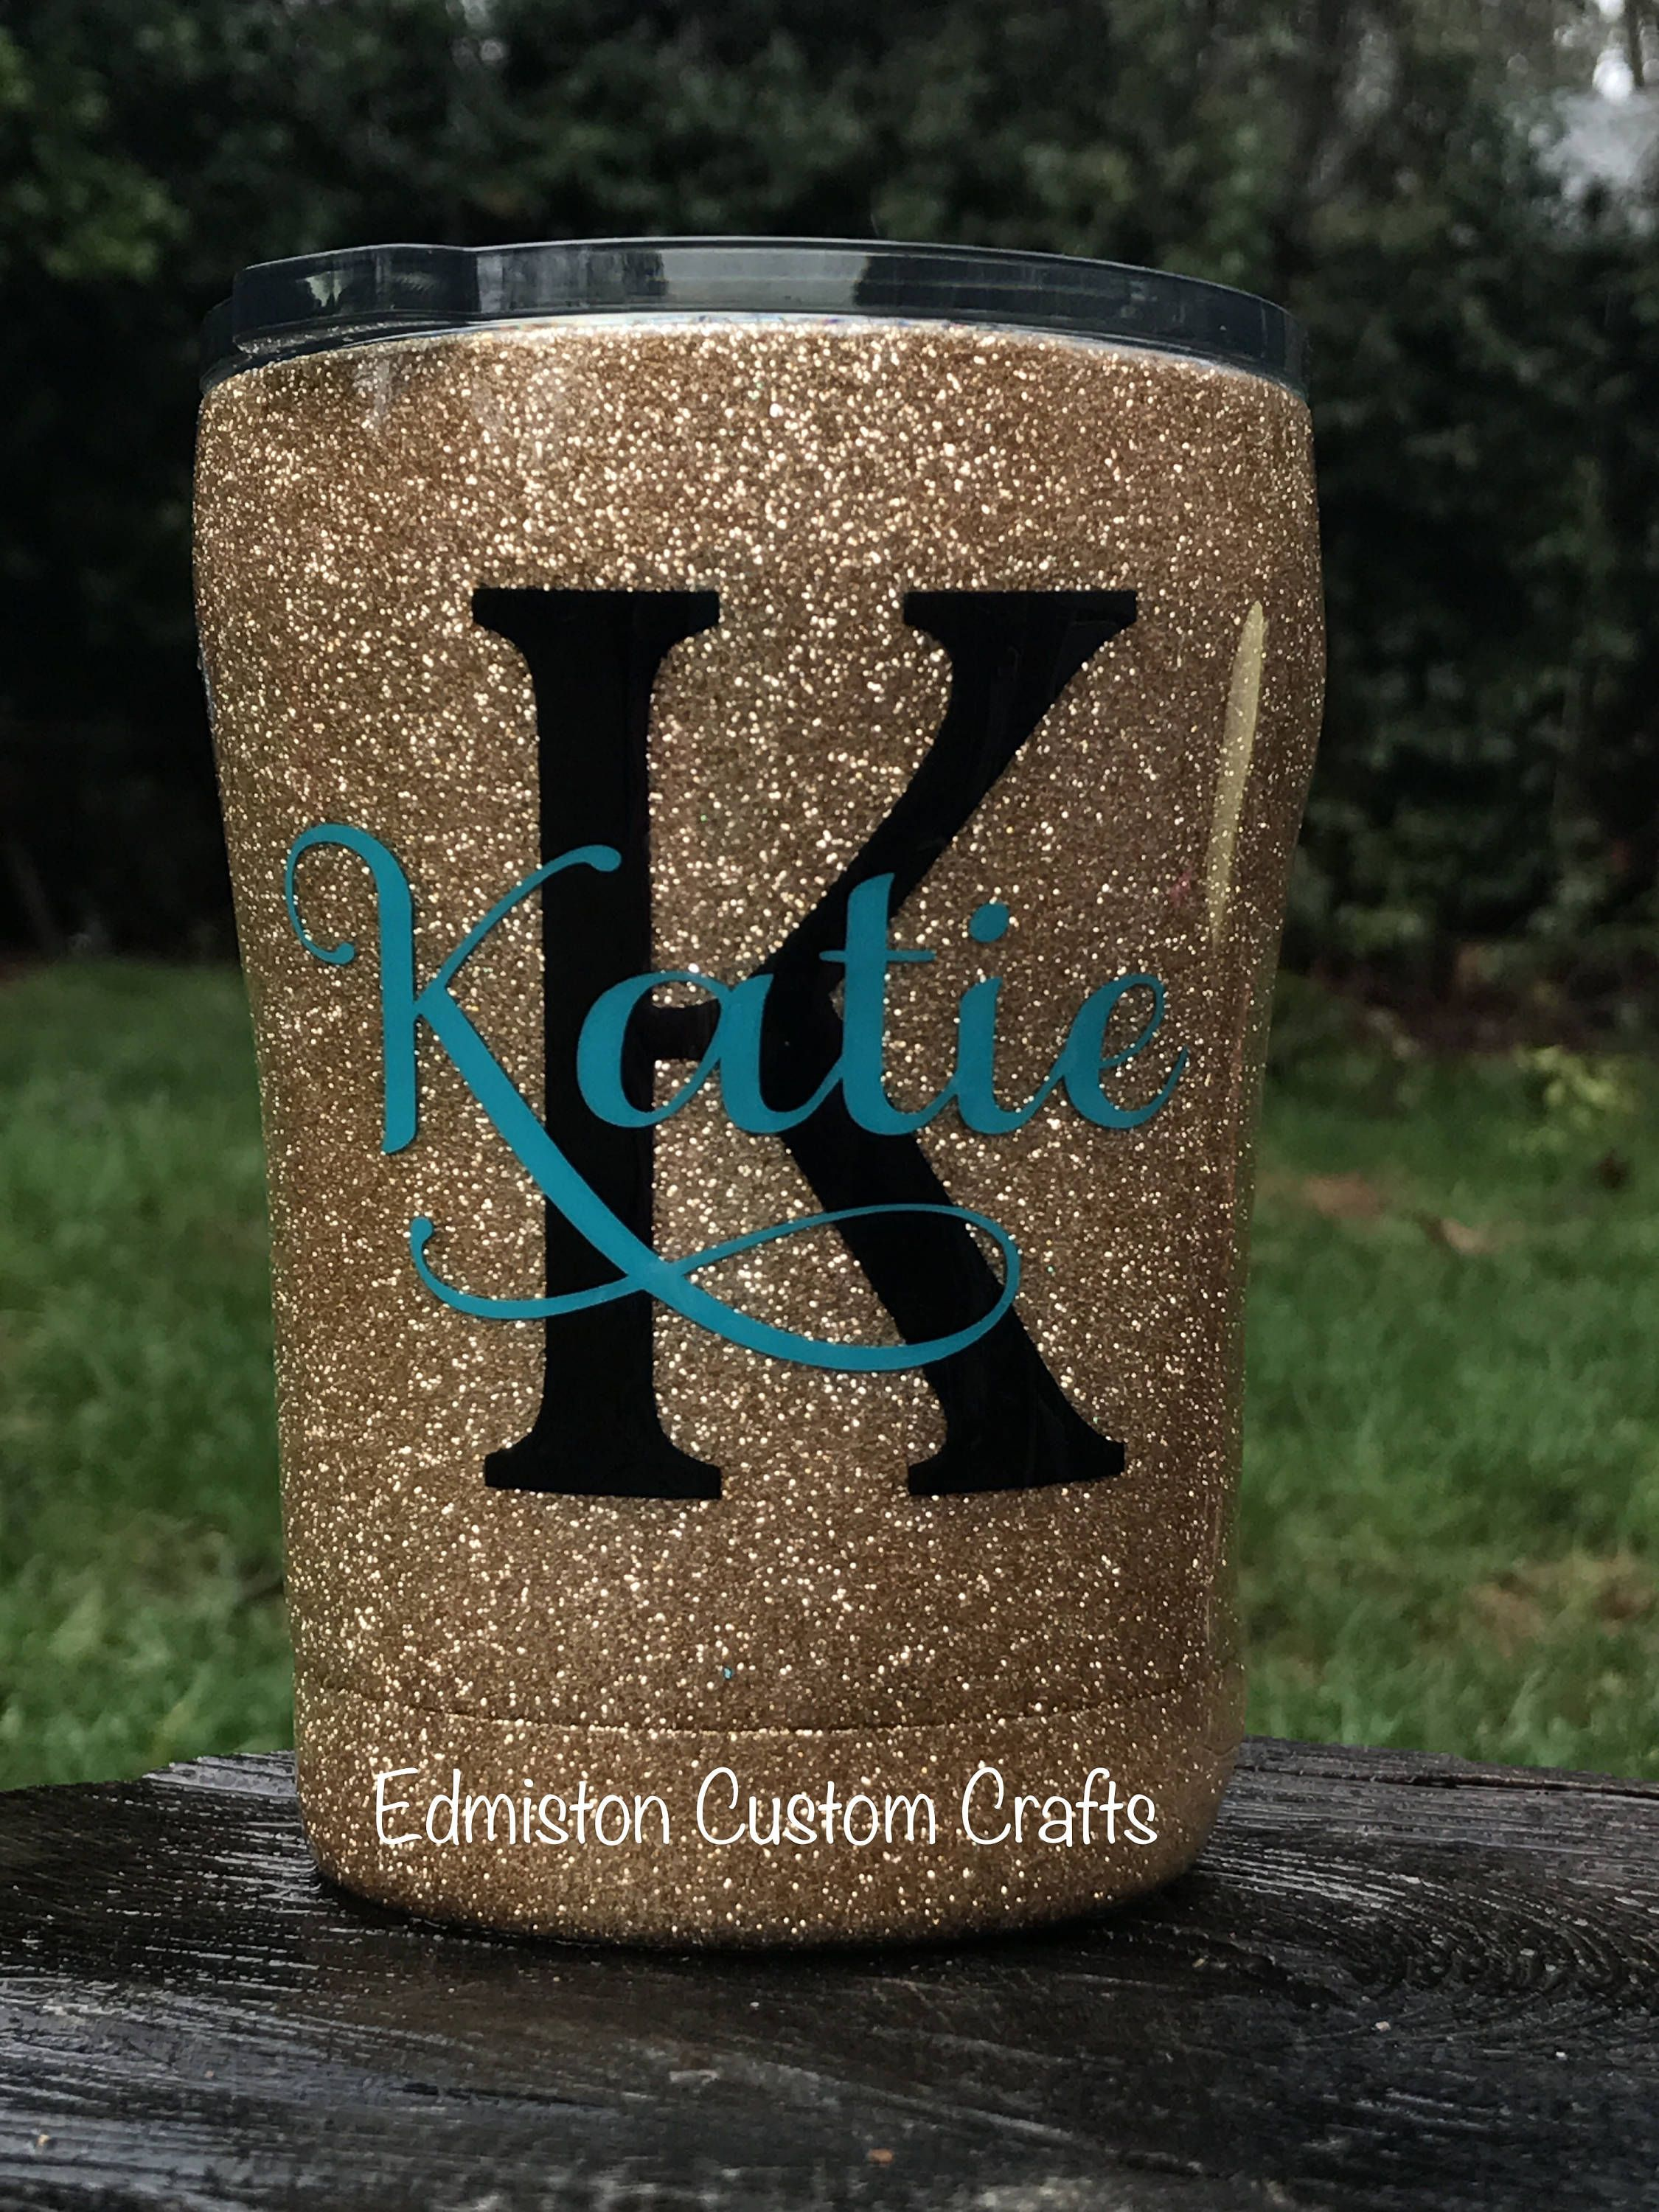 Gold Glittered 10oz Stainless Steel Tumbler Personalized Cup Monogram Name Cup Kid Size Cup Toddler Tumbl Bricolaje Y Manualidades Manualidades Creatividad